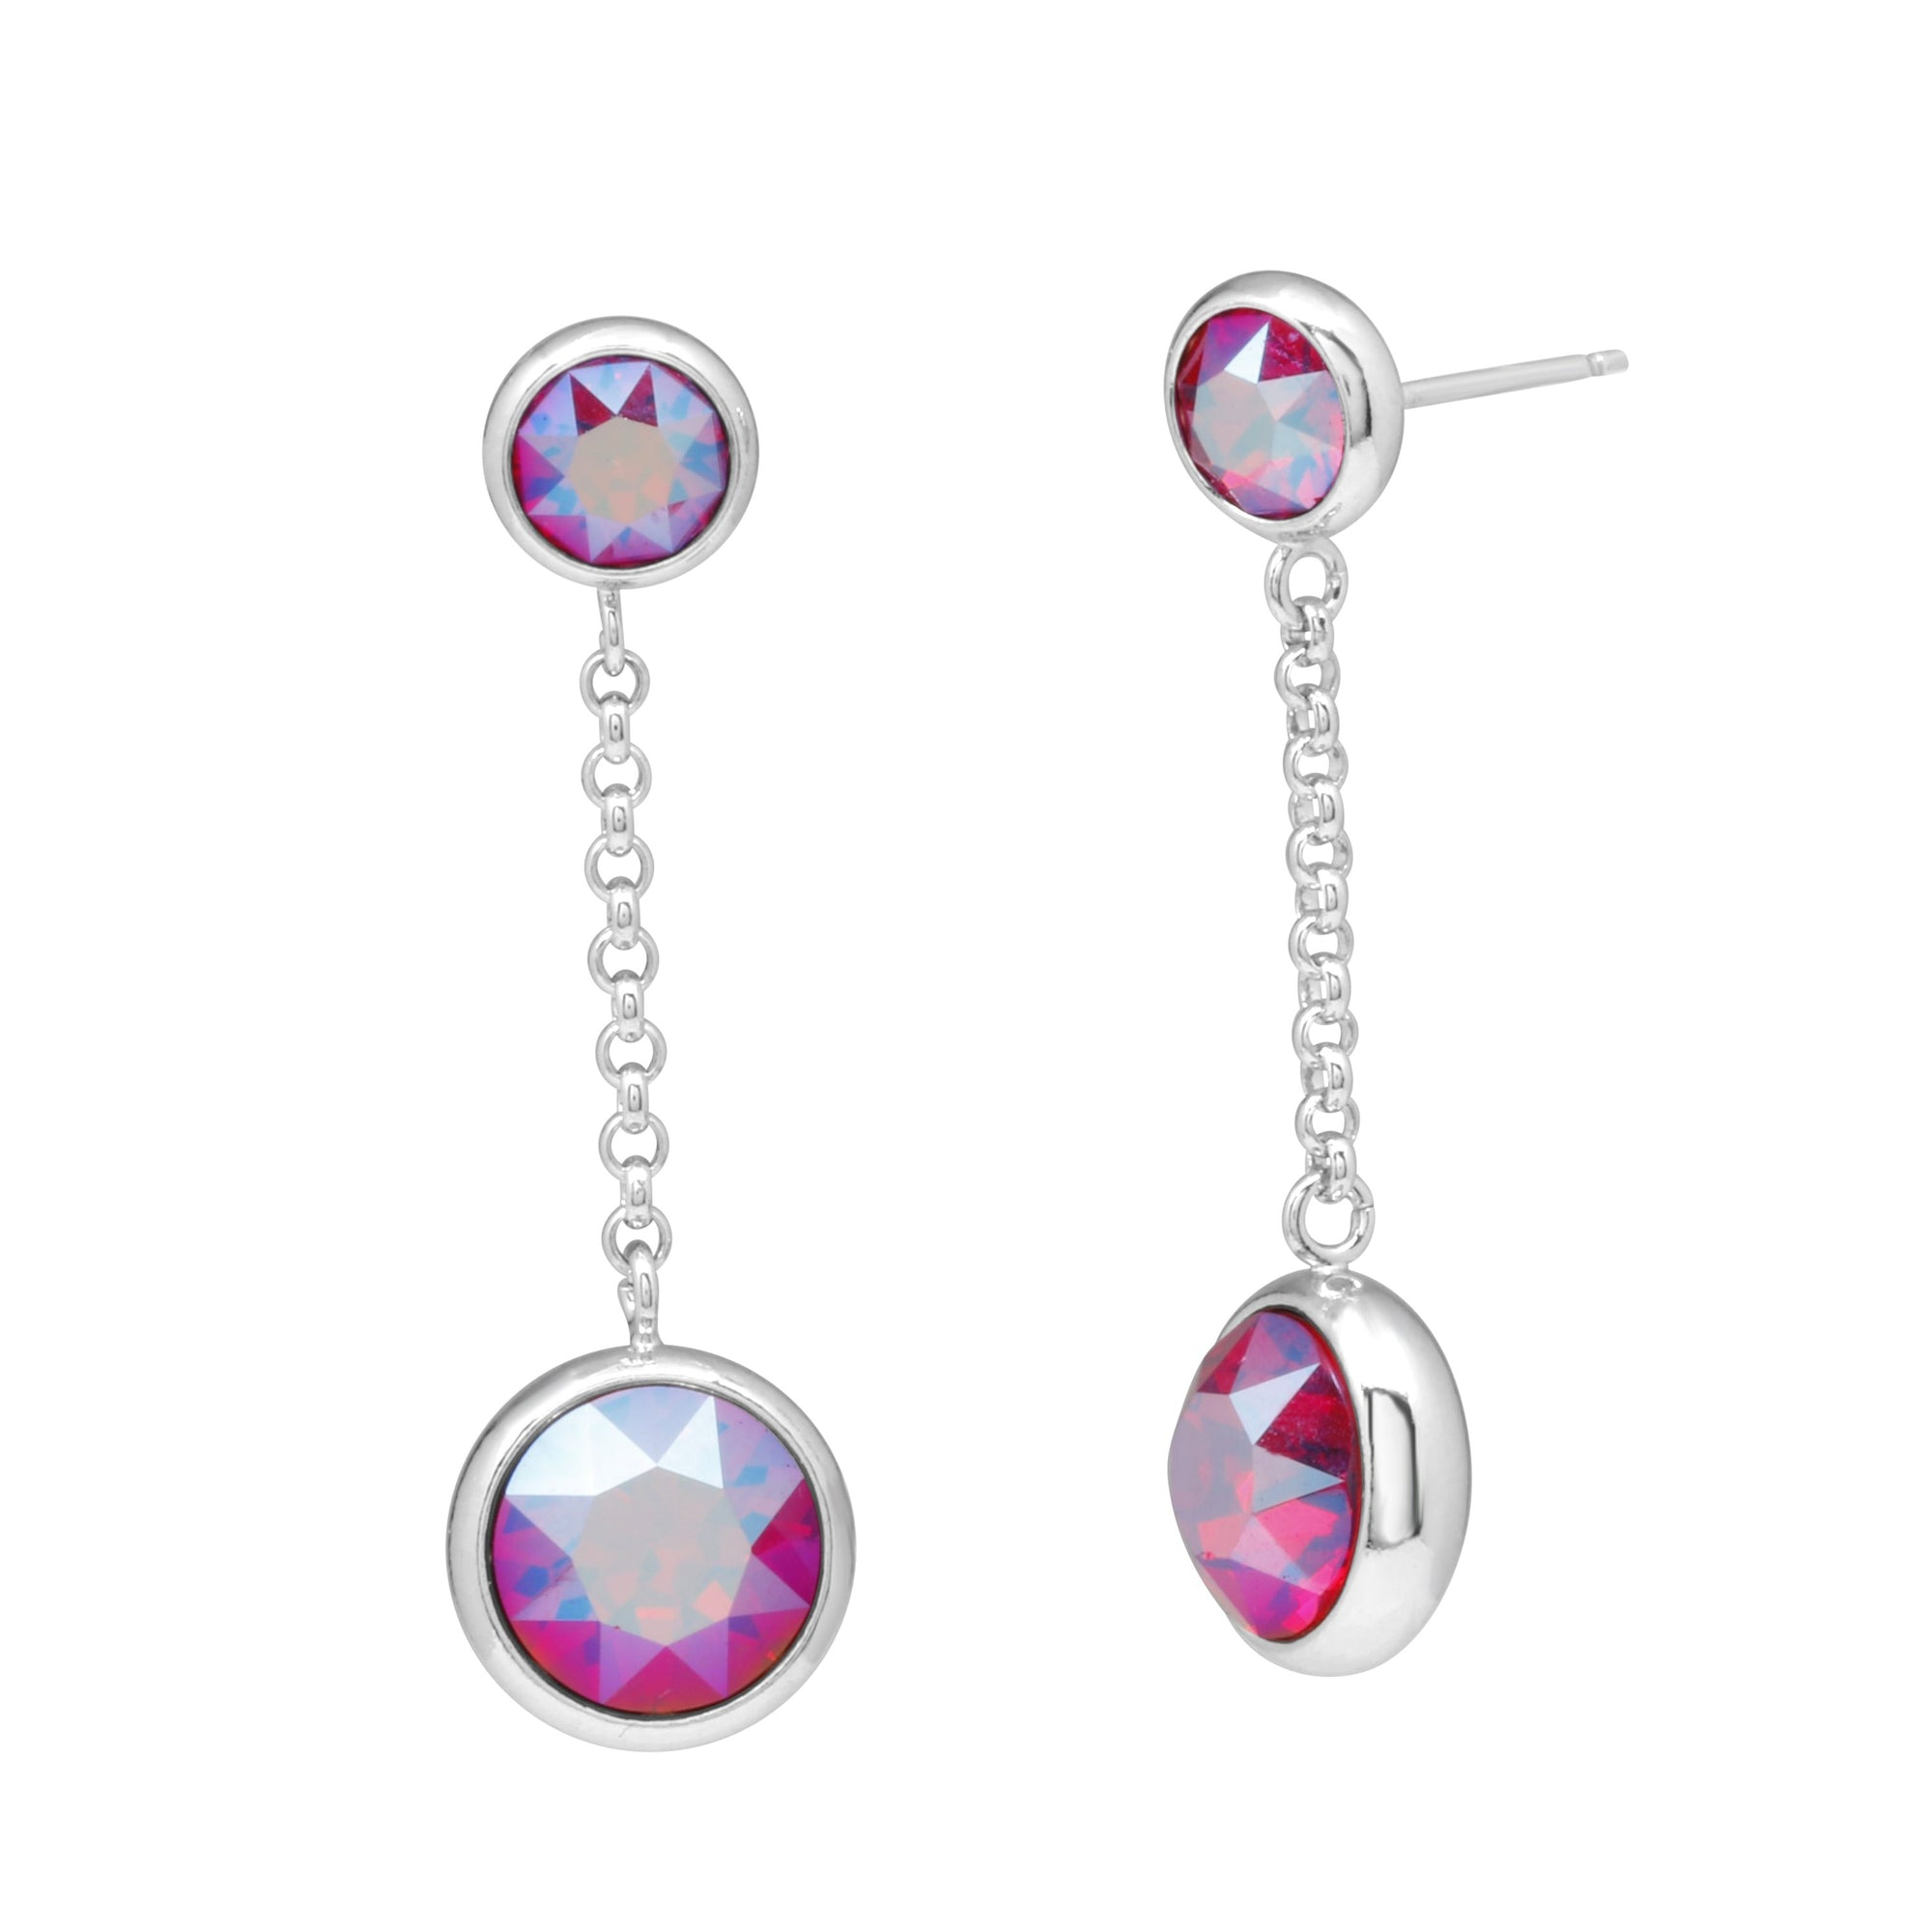 CARLOTTA DROP EARRING LIGHT SIAM SHIMMER forevercrystals